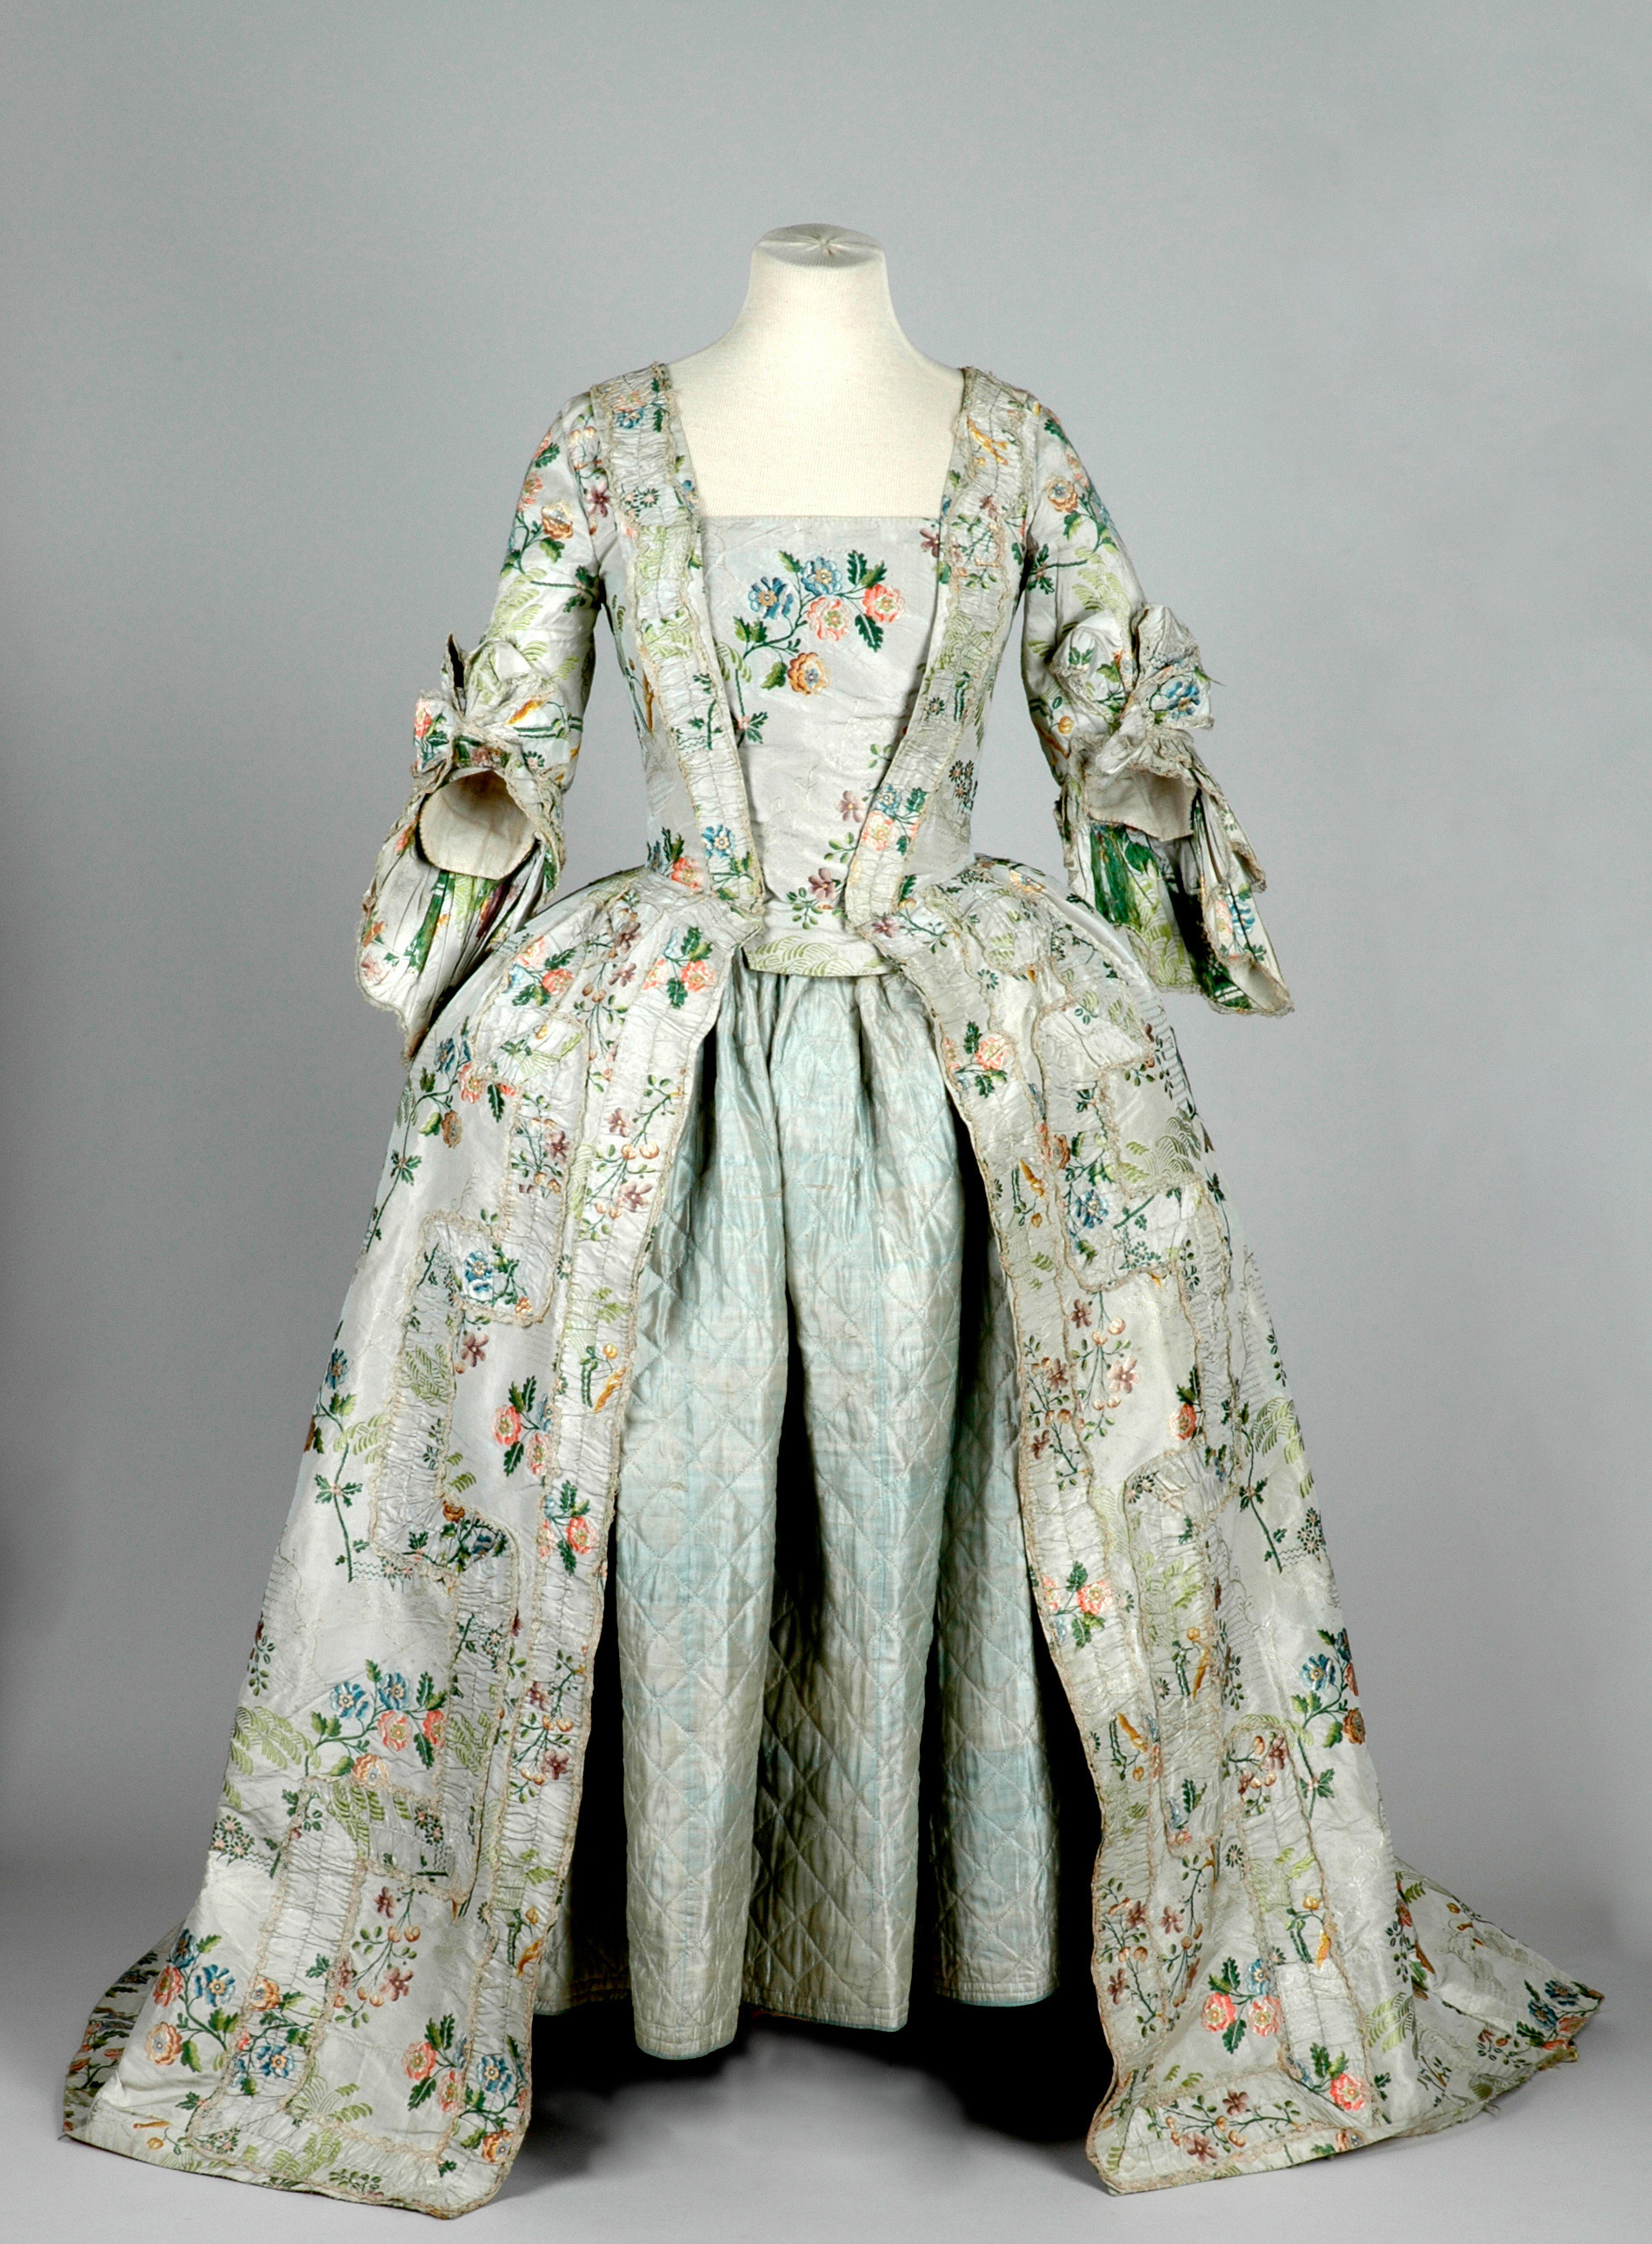 18th century dresses pictures The Food Timeline-Christmas food history